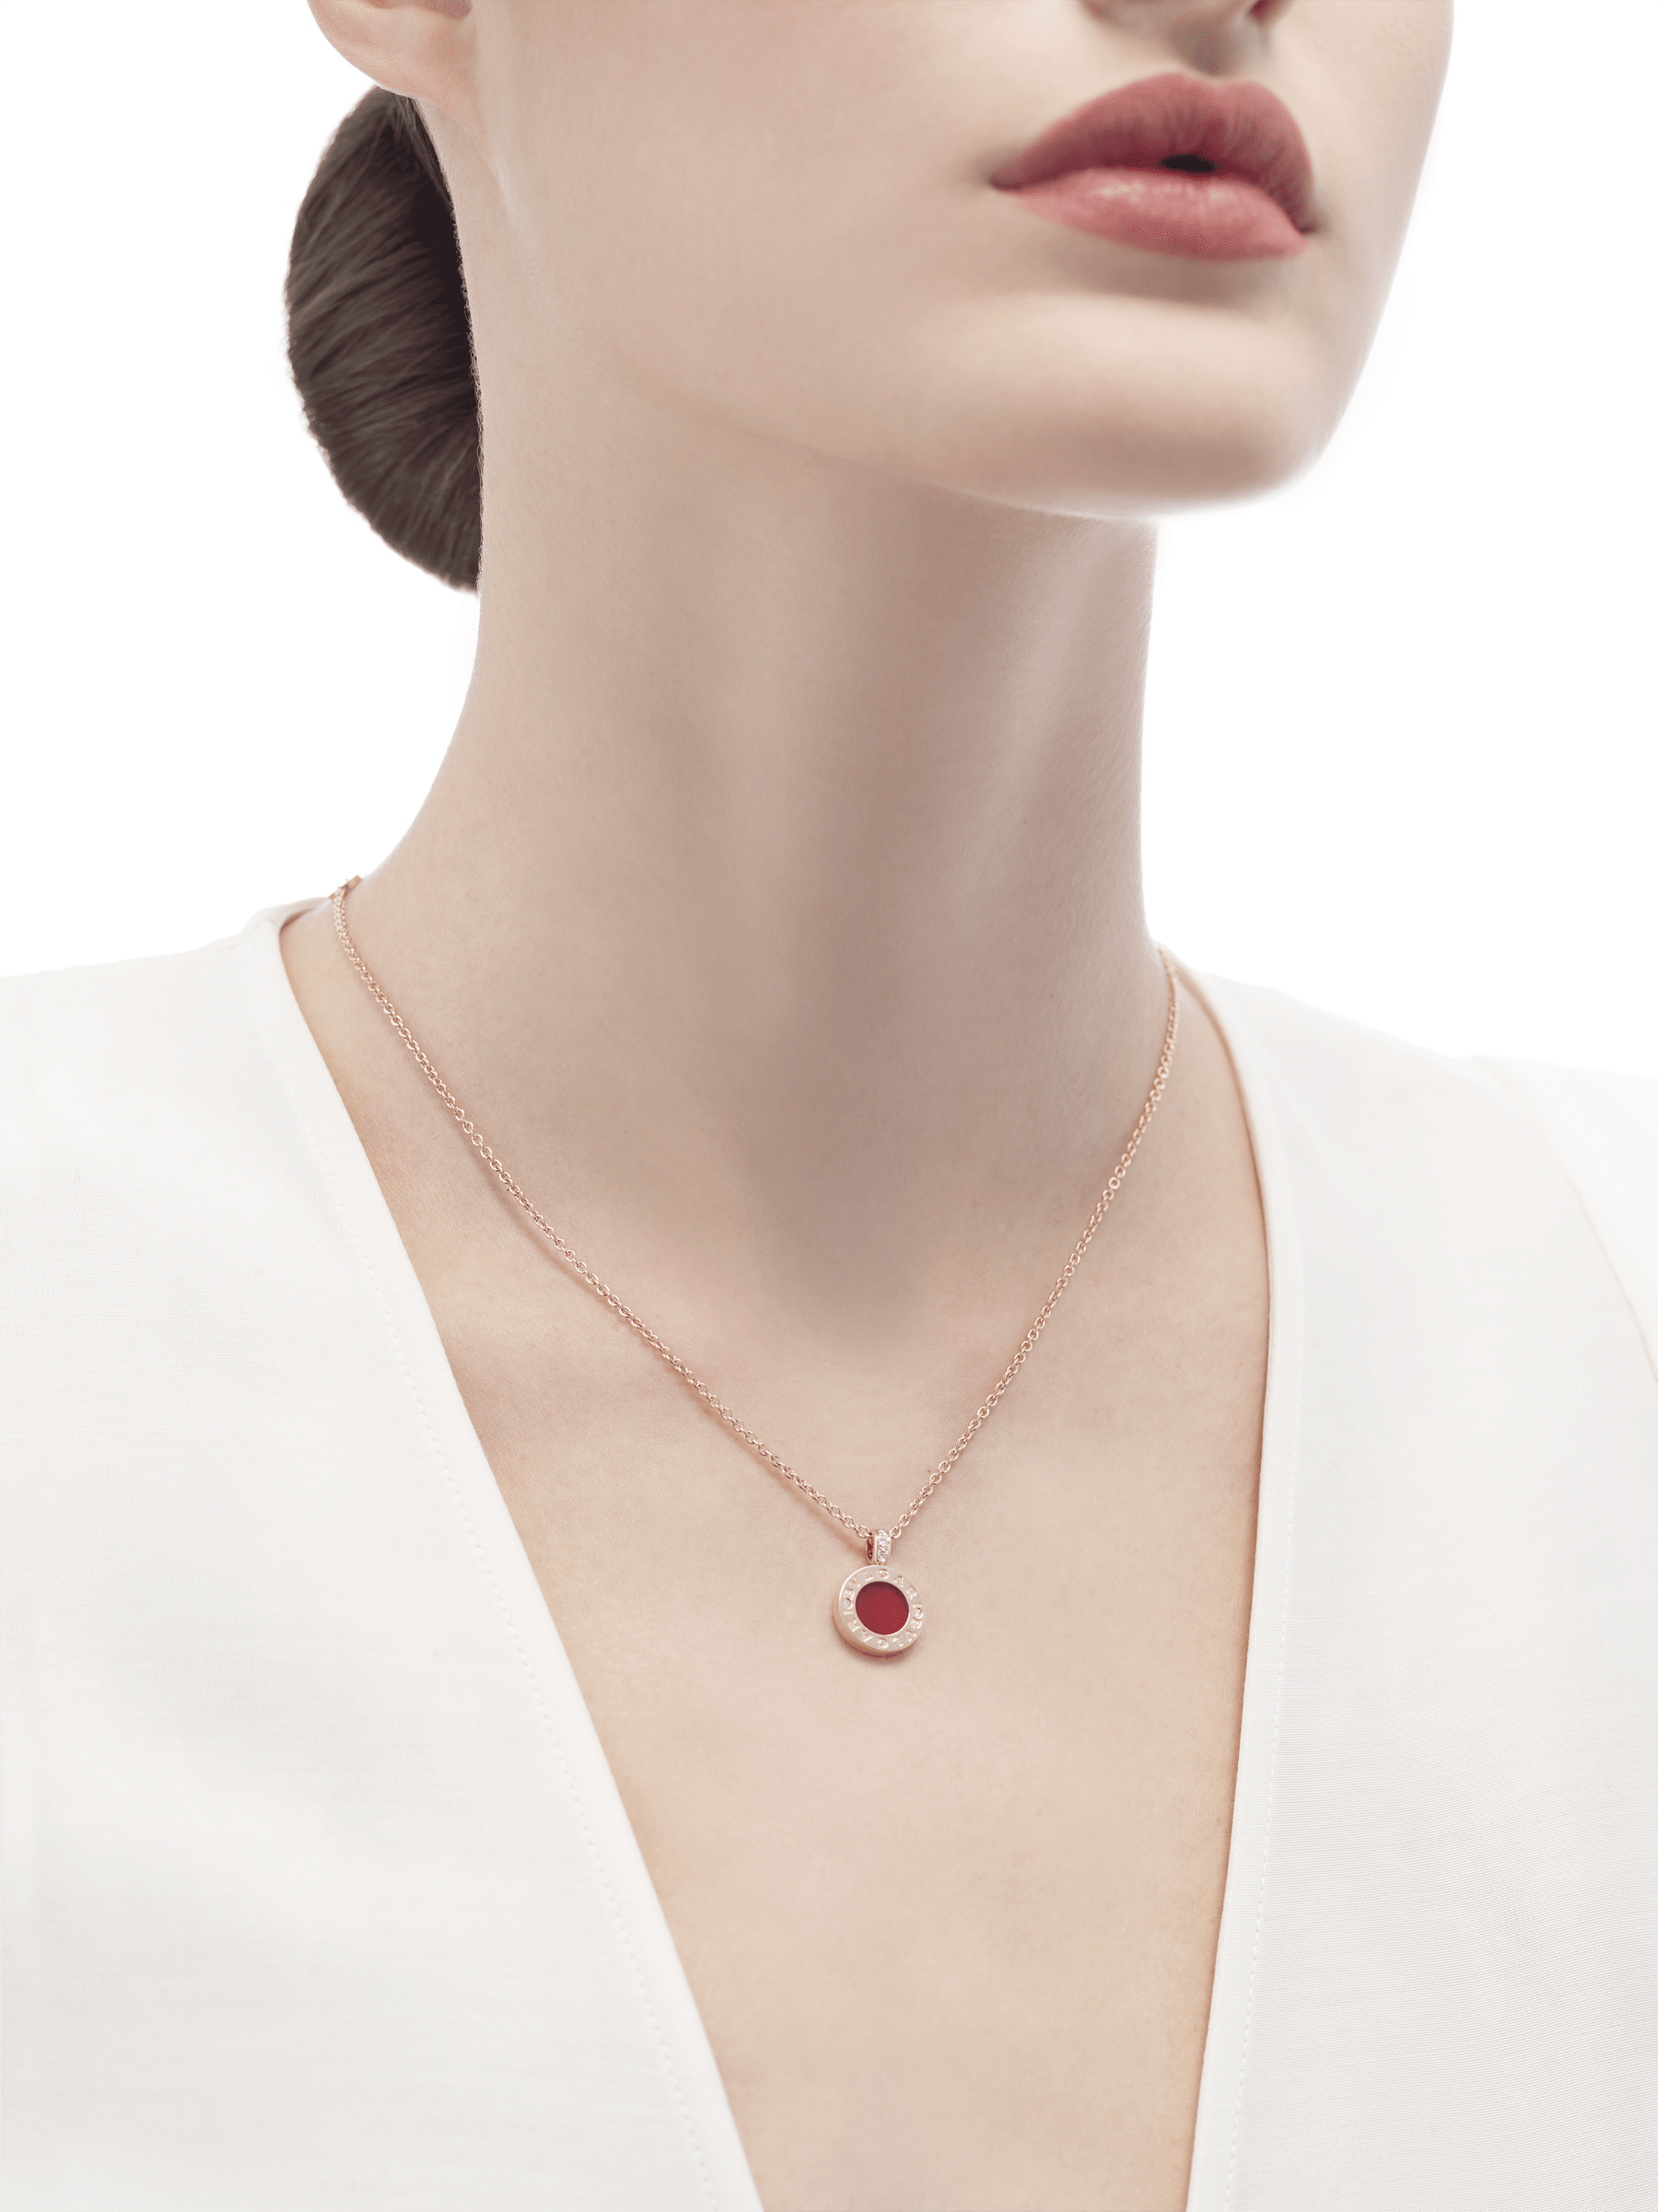 BVLGARI BVLGARI necklace with 18 kt rose gold chain and pendant, set with carnelian and mother-of-pearl discs and with details in pavé diamonds. 352883 image 5